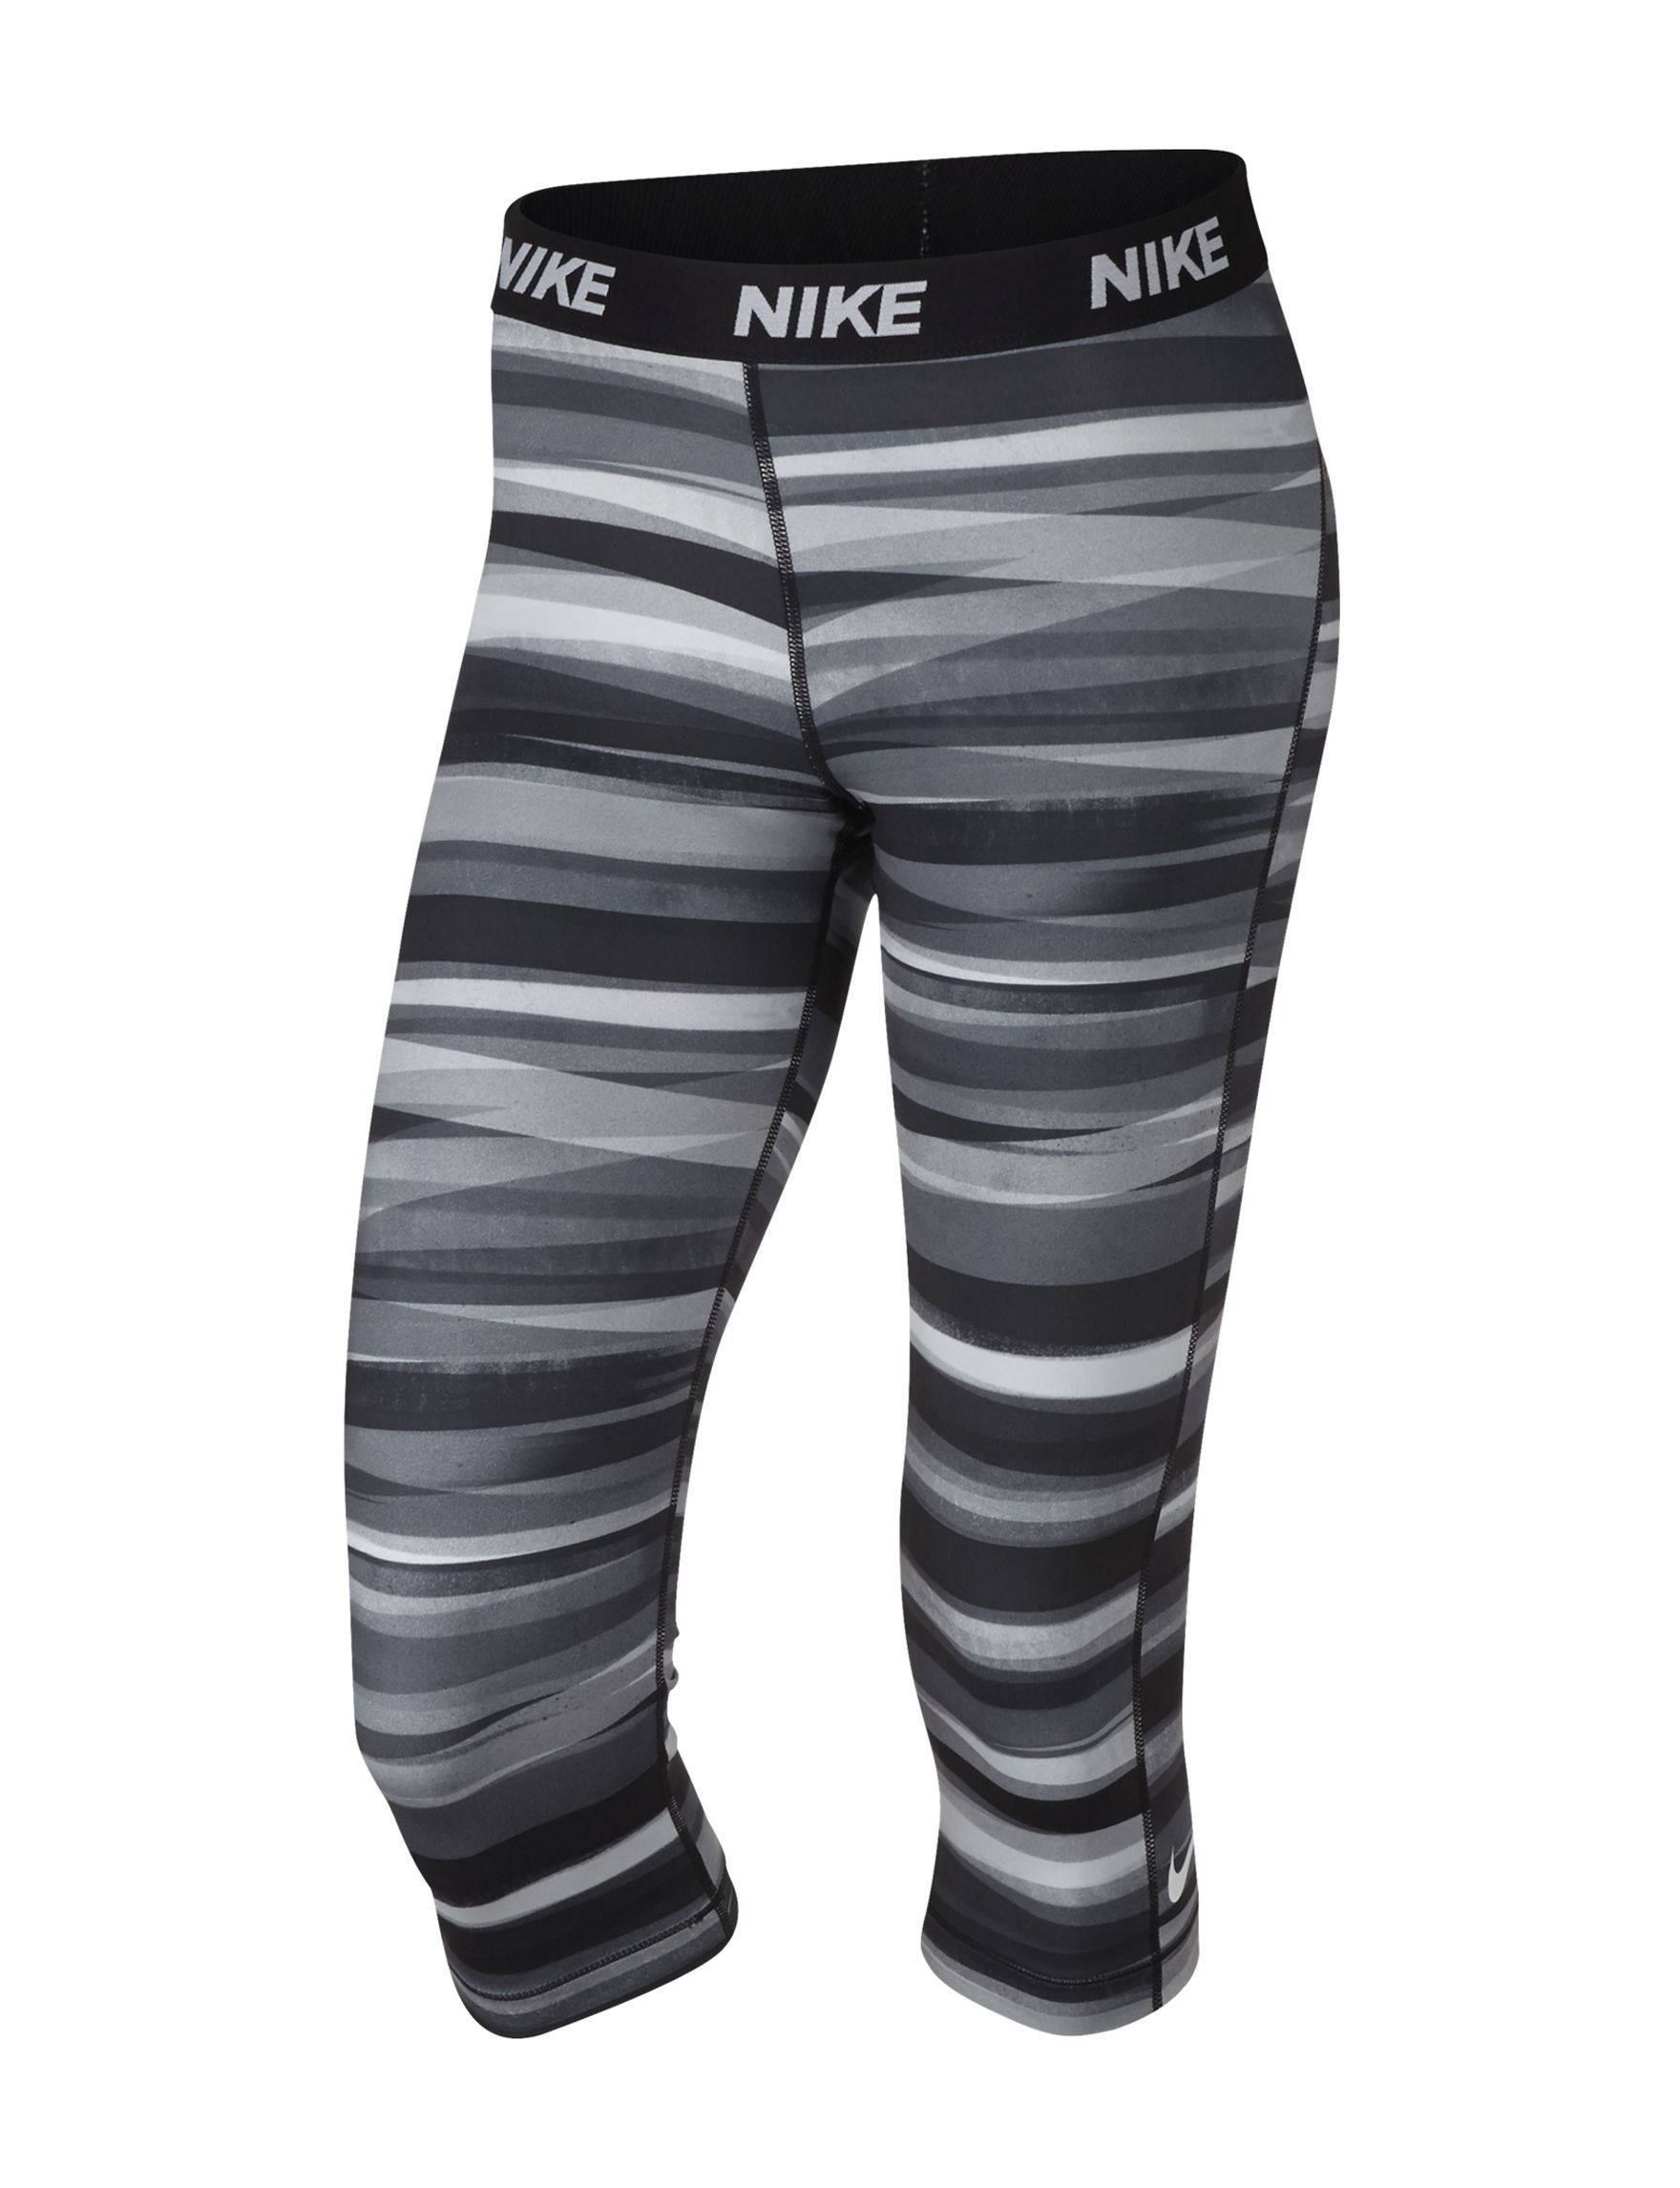 Nike Grey / Black / White Leggings